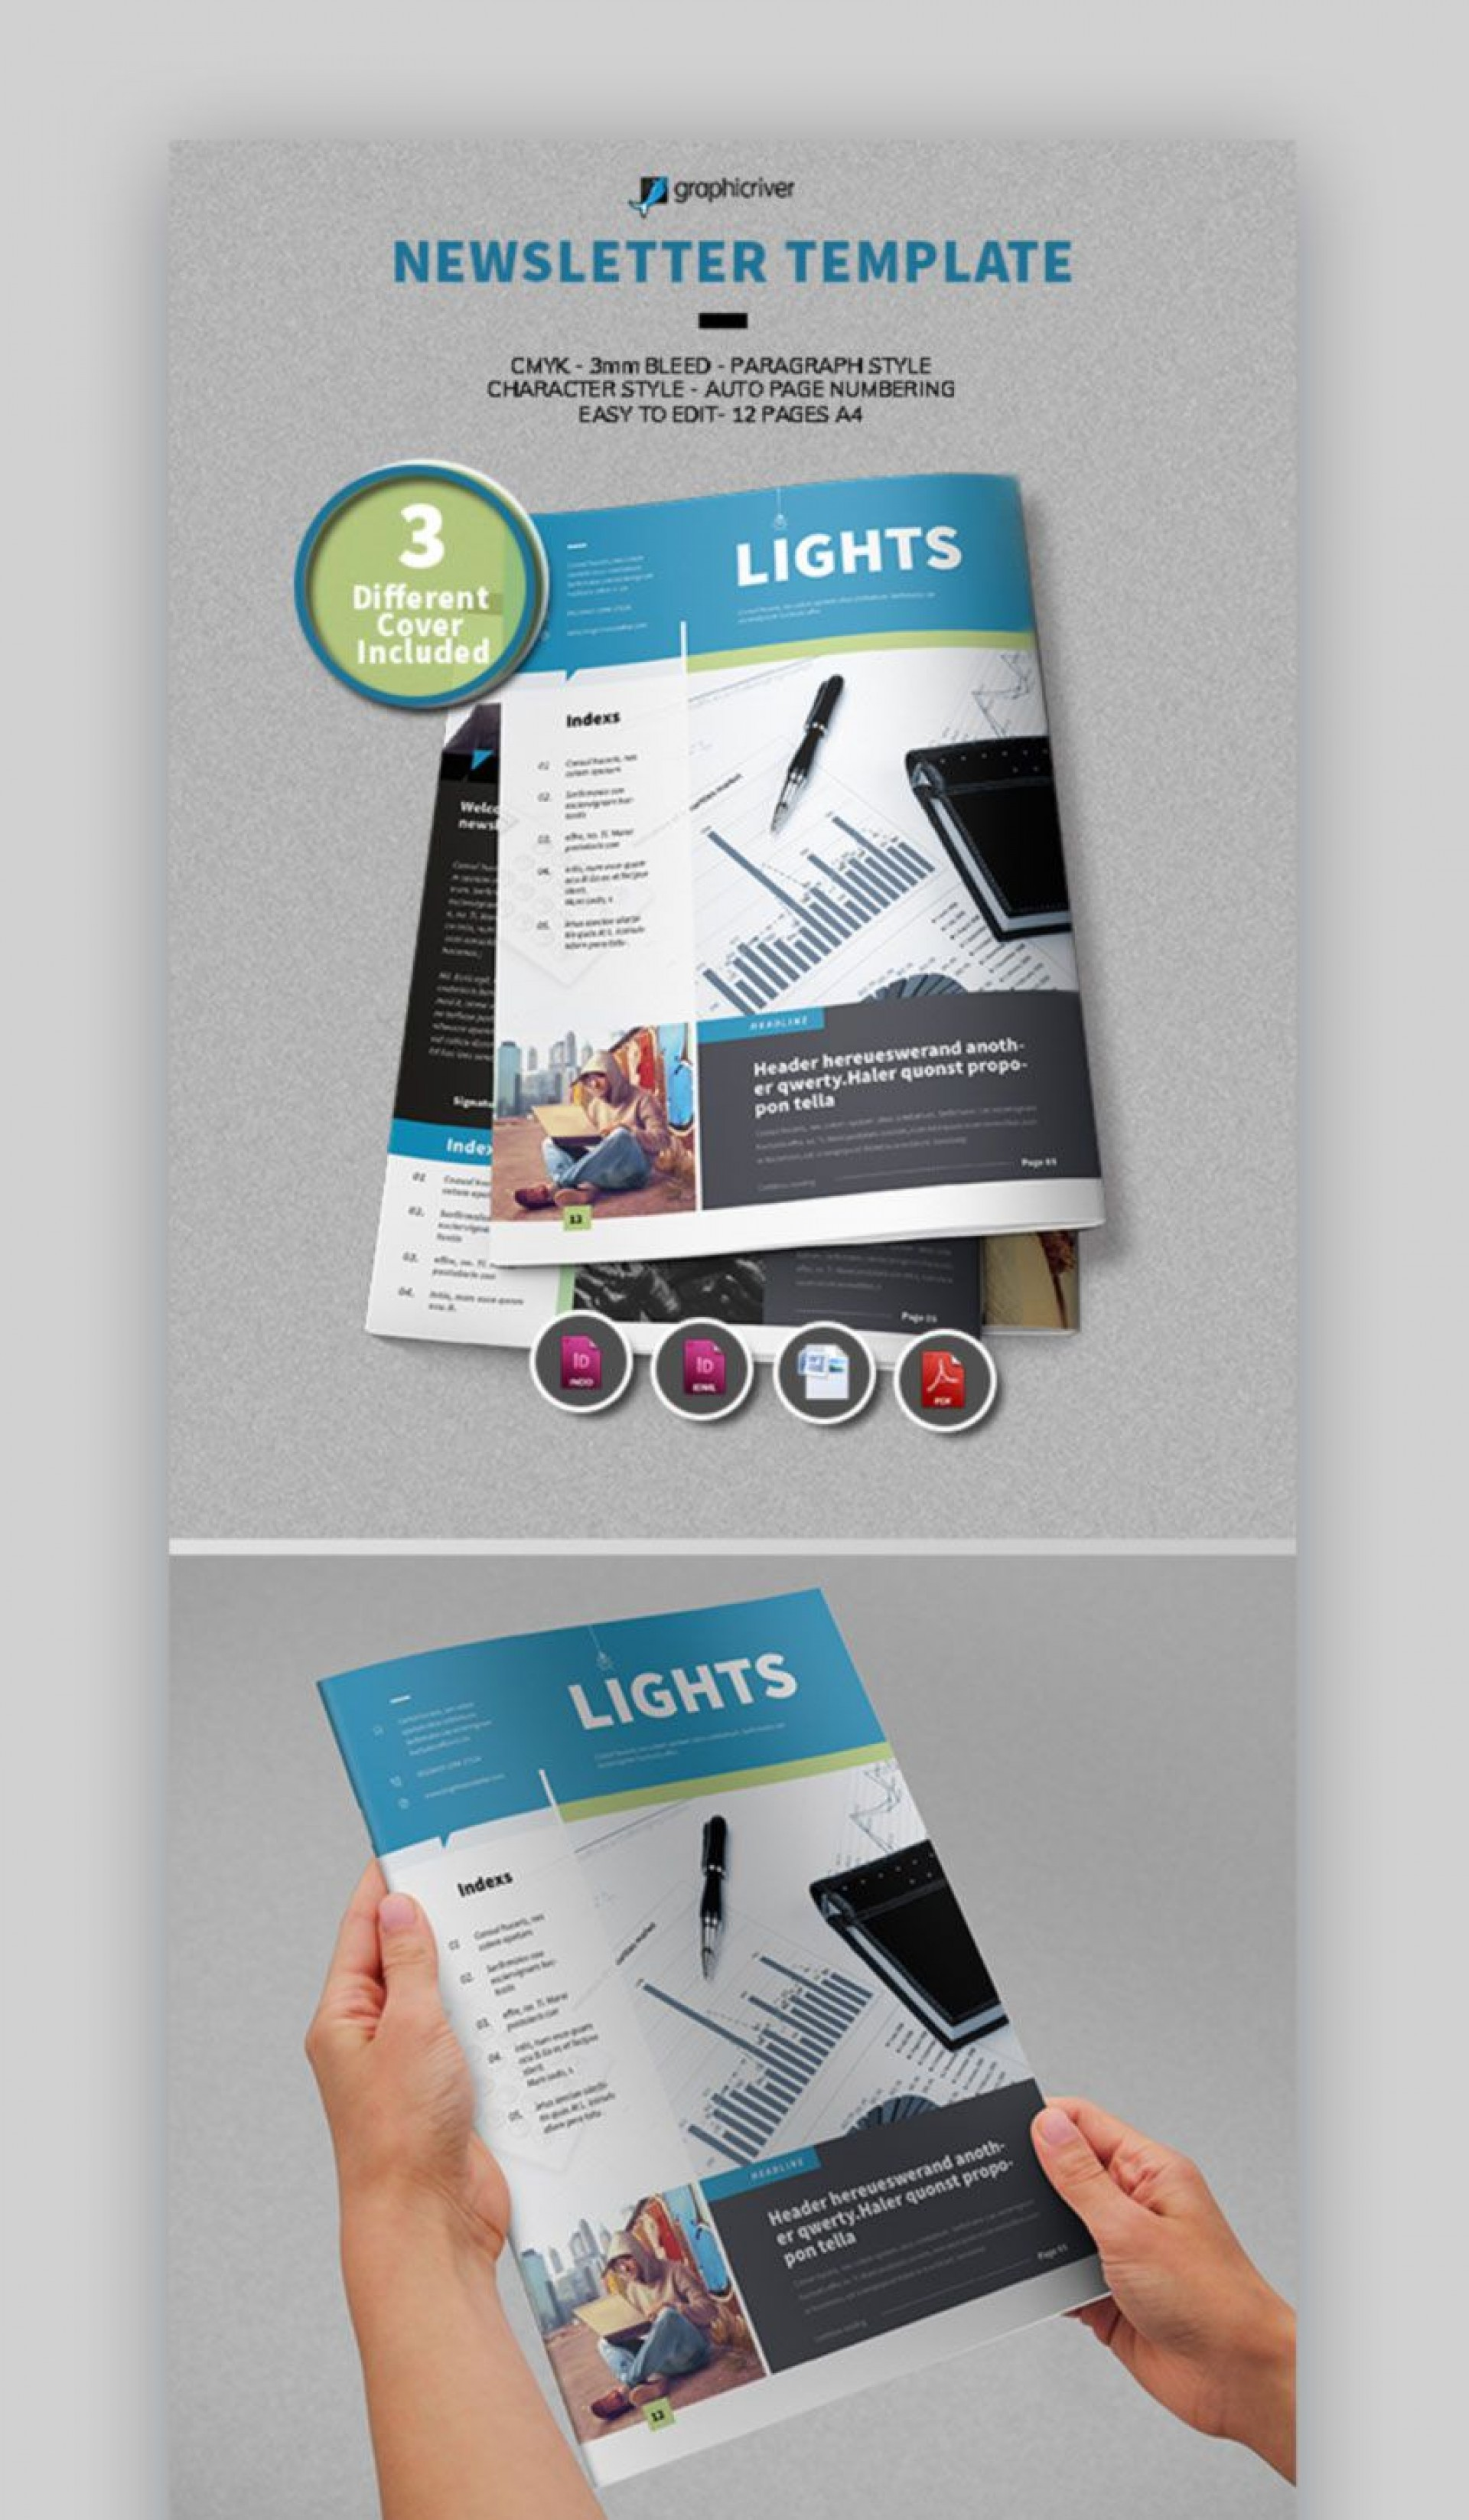 006 Astounding Microsoft Office Newsletter Template Image  Templates Publisher 365 Online1920